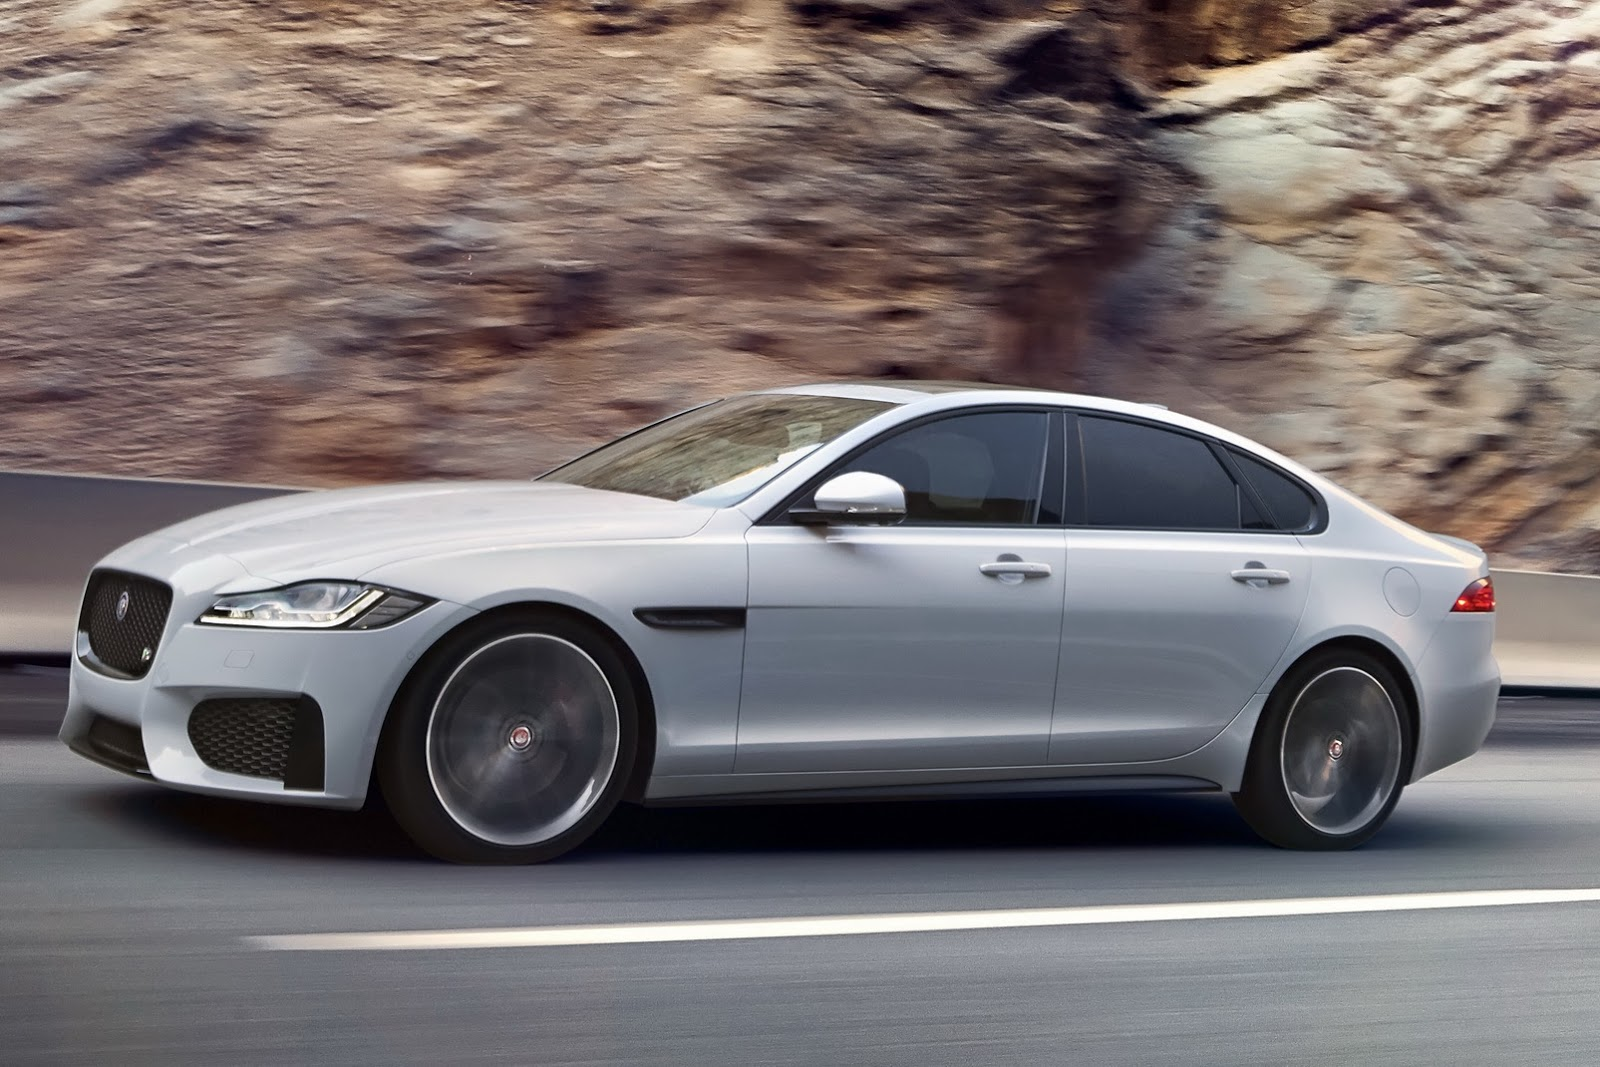 watch live unveiling of new 2016 jaguar xf here update official photos added carscoops. Black Bedroom Furniture Sets. Home Design Ideas